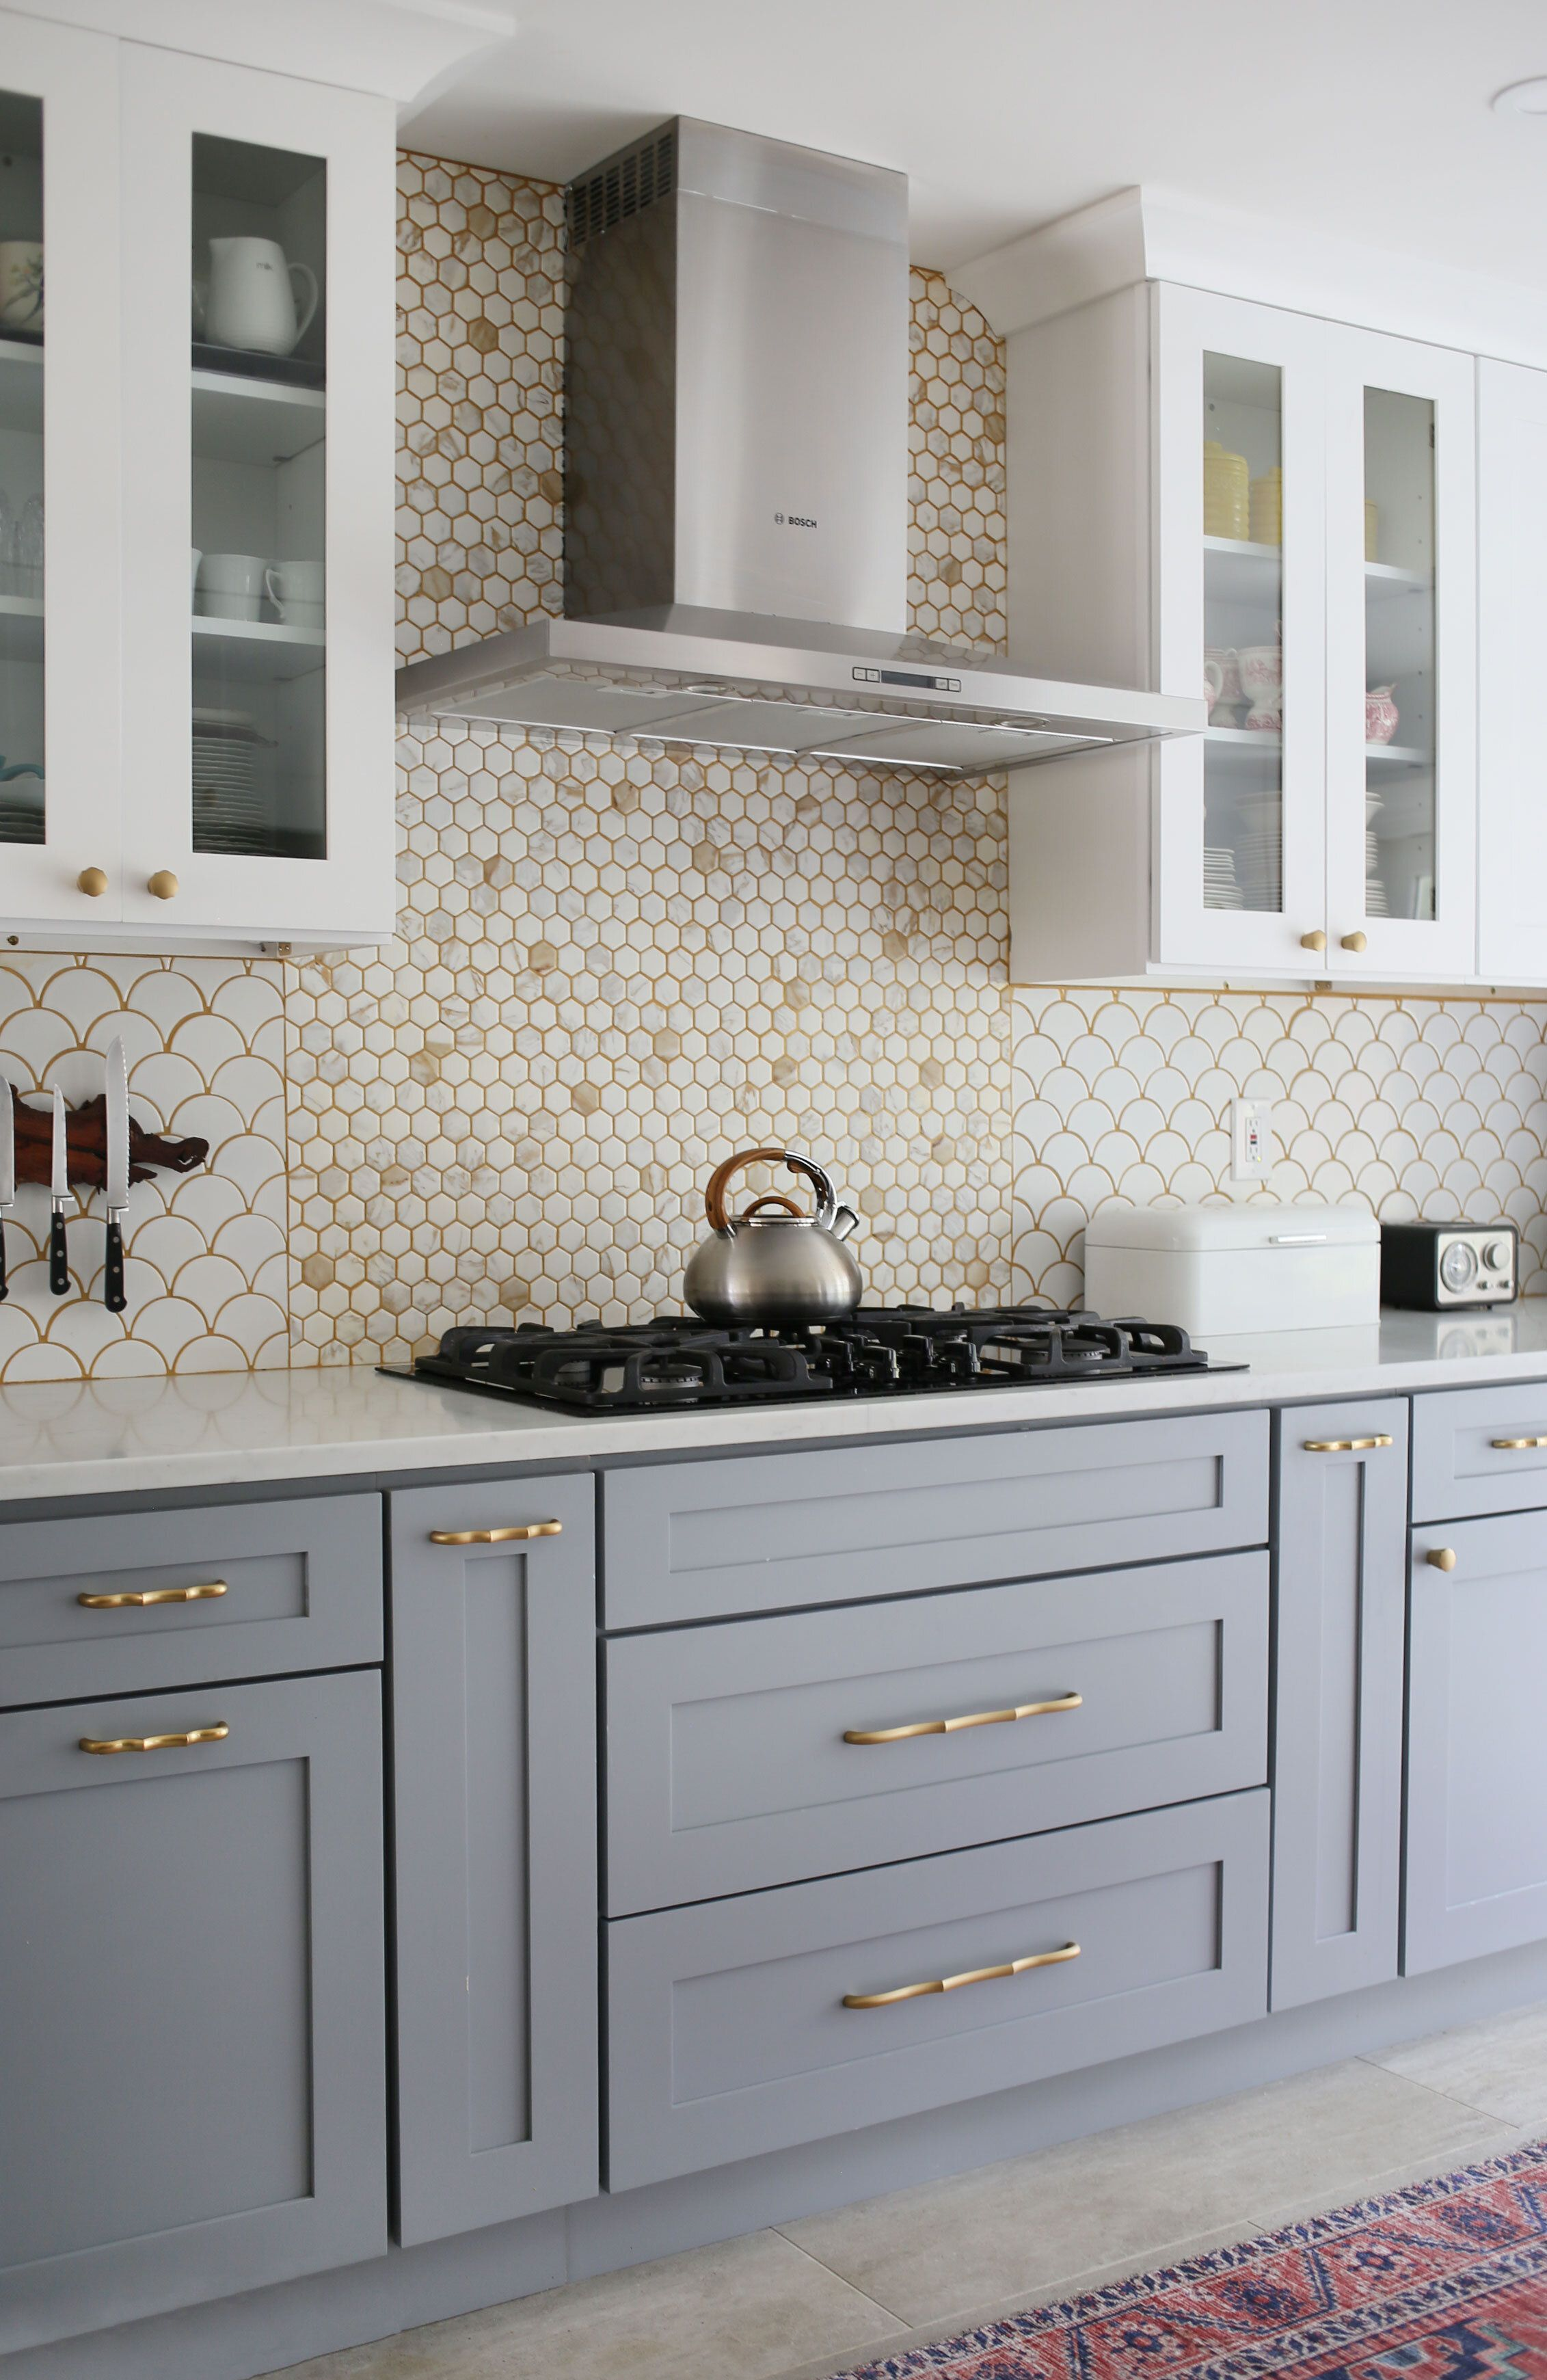 A Tale Of Two Kitchens In 2020 Gray And White Kitchen White Tile Kitchen Backsplash White Kitchen